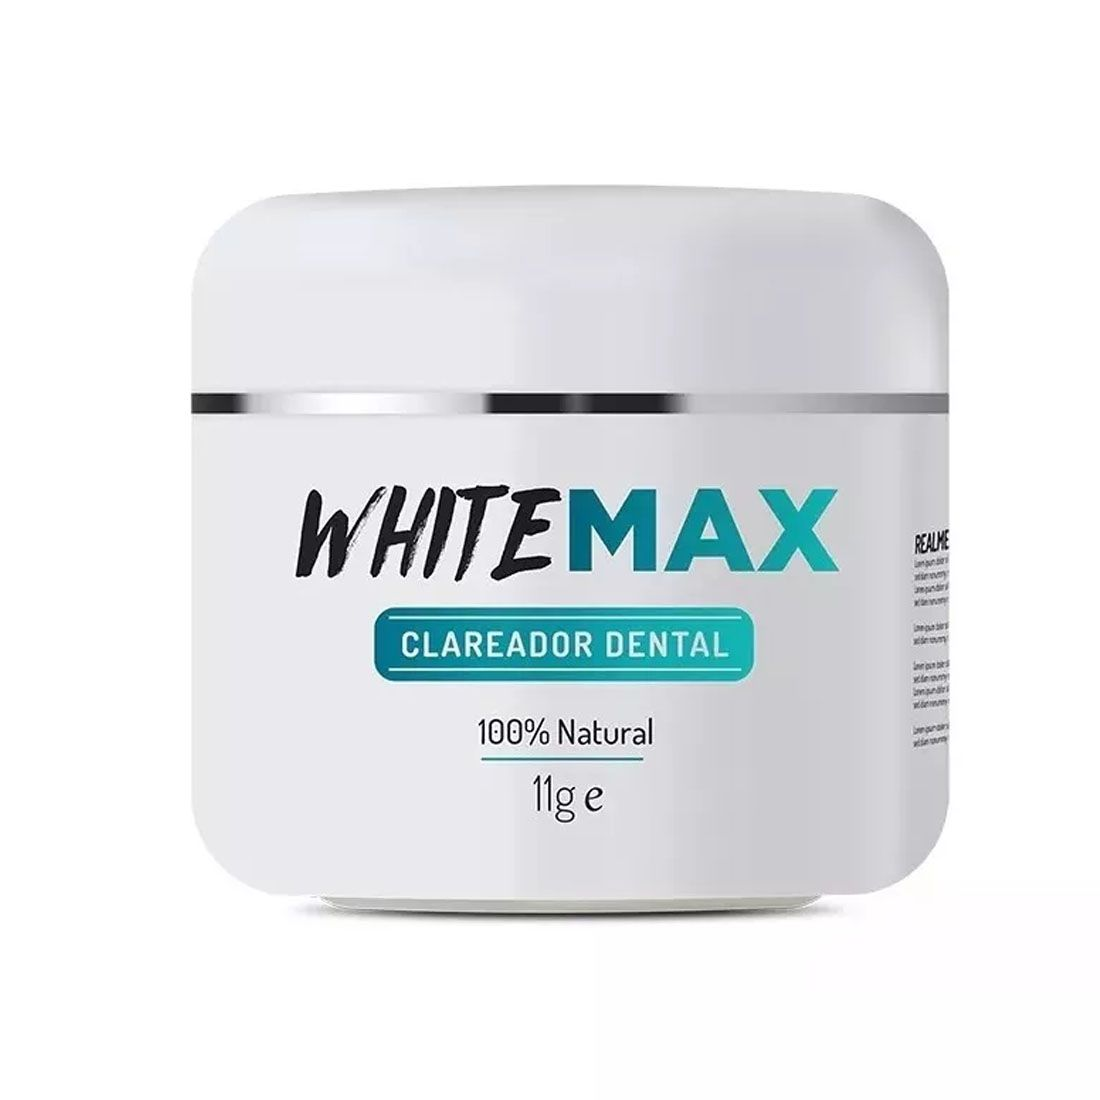 Clareador Dental Whitemax 1 Pote 11g  100% Natural White Max